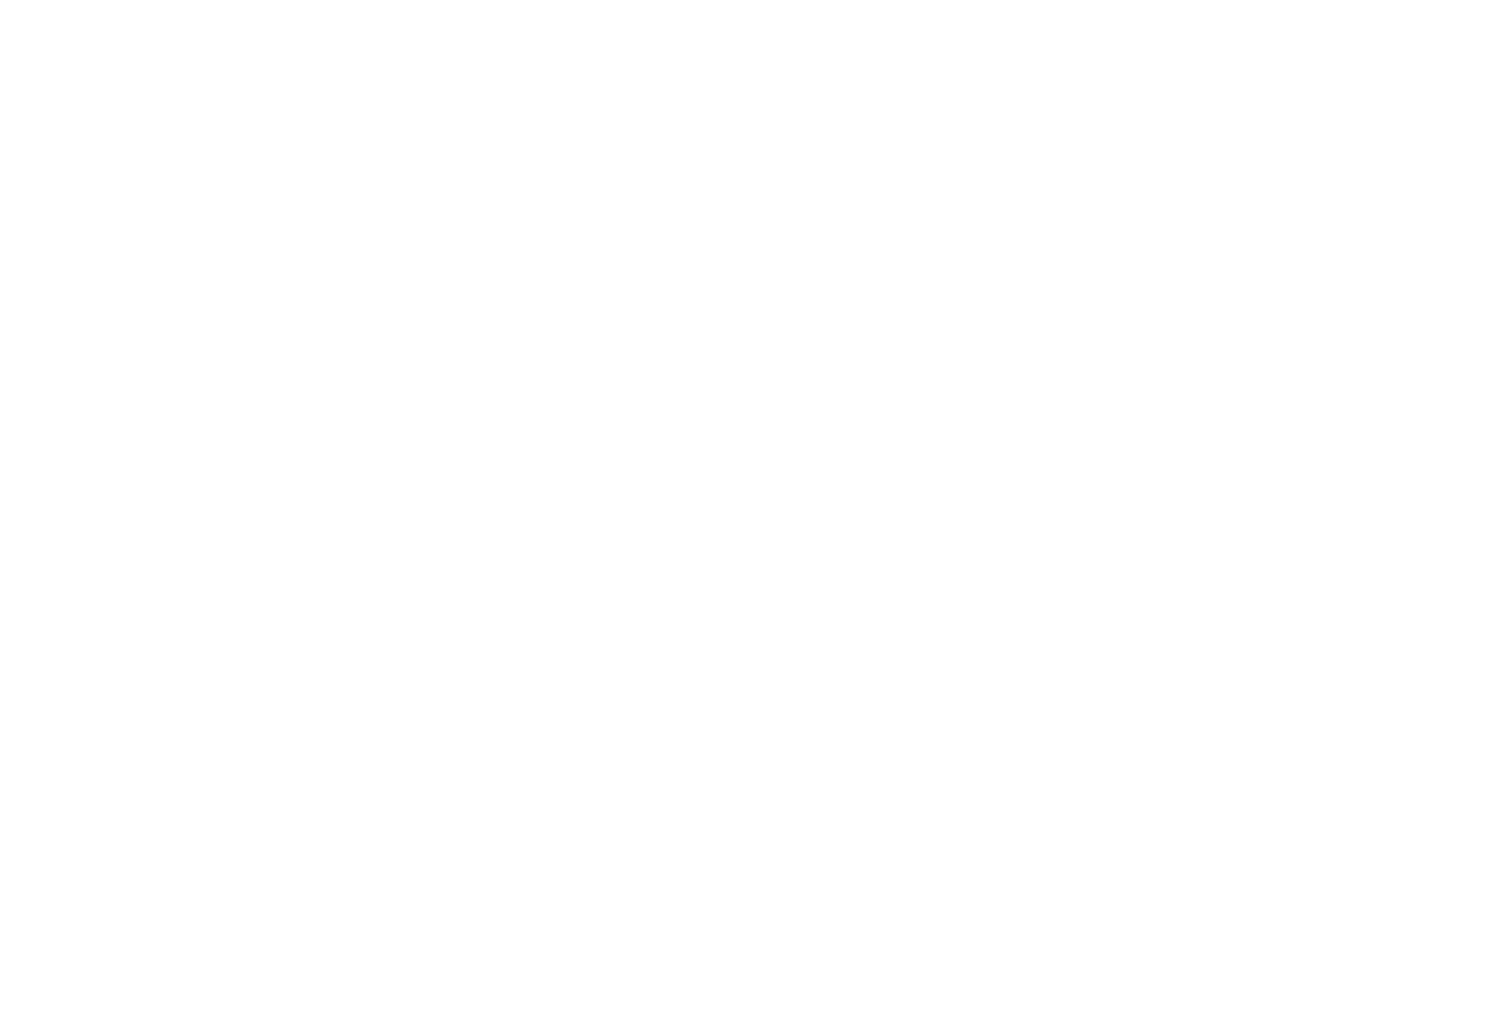 Prewitt Hardwood Floors